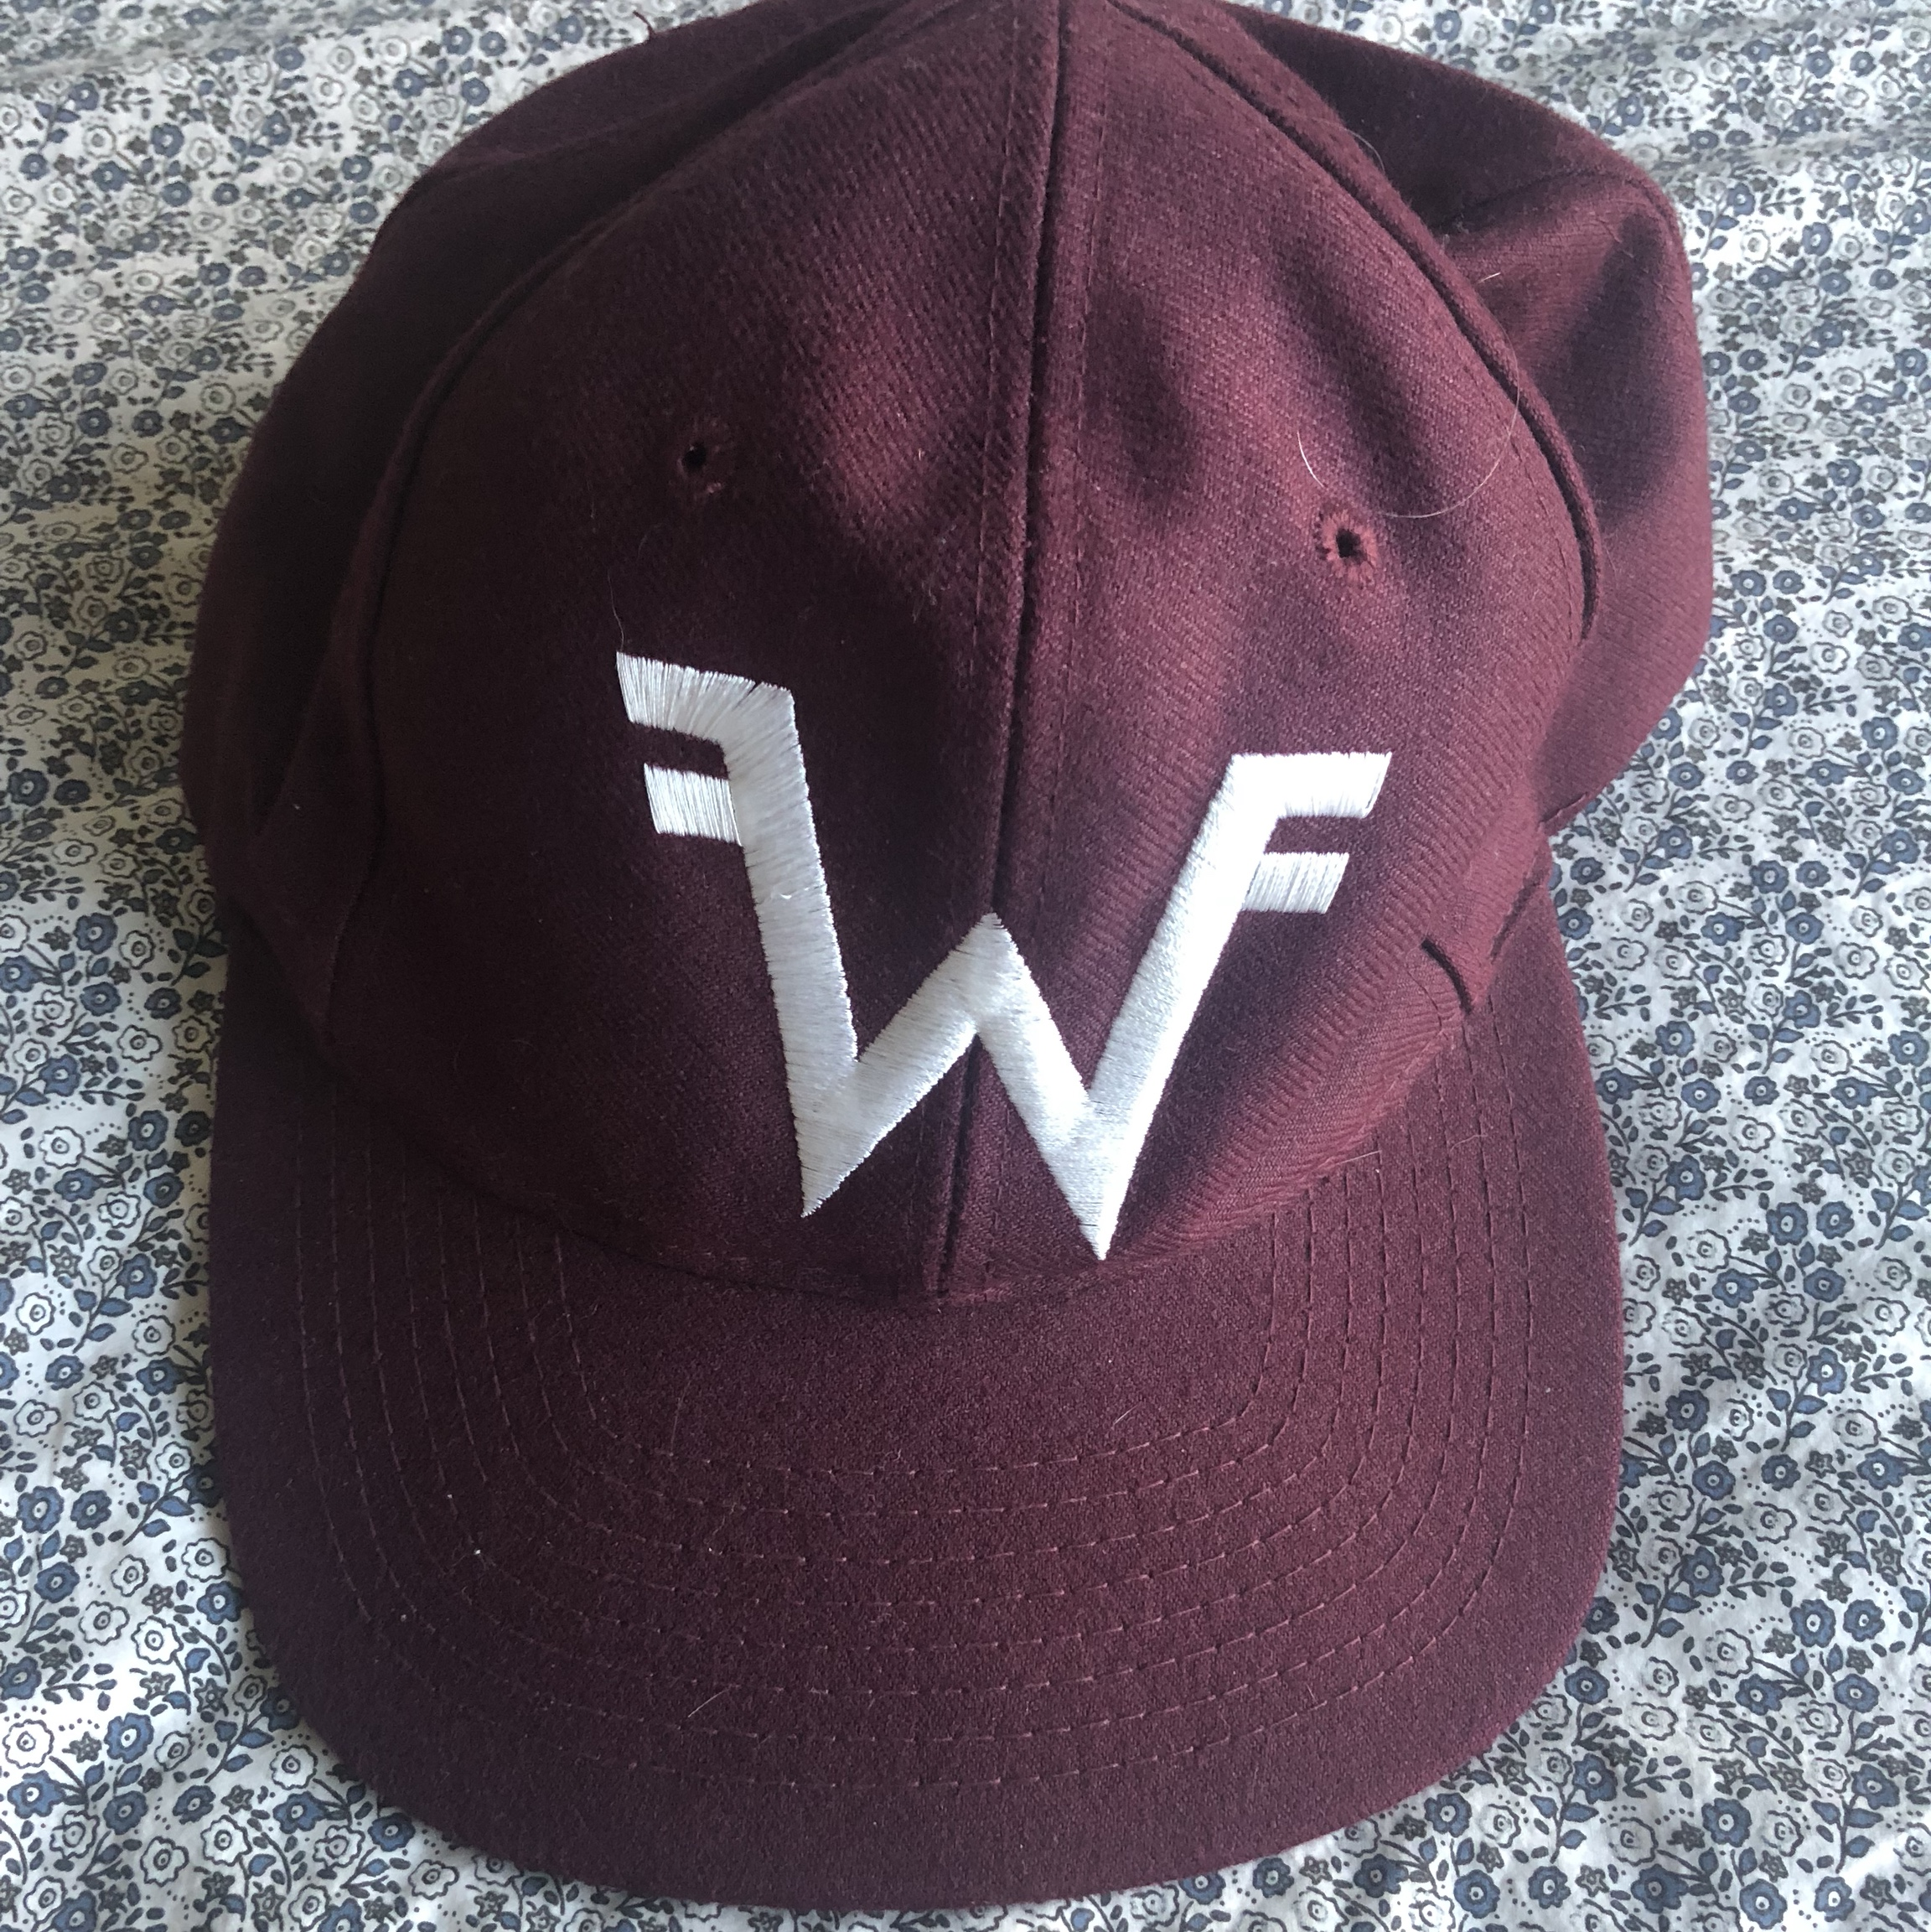 Original weezer fan club hat  Head-to-toe brand    - Depop